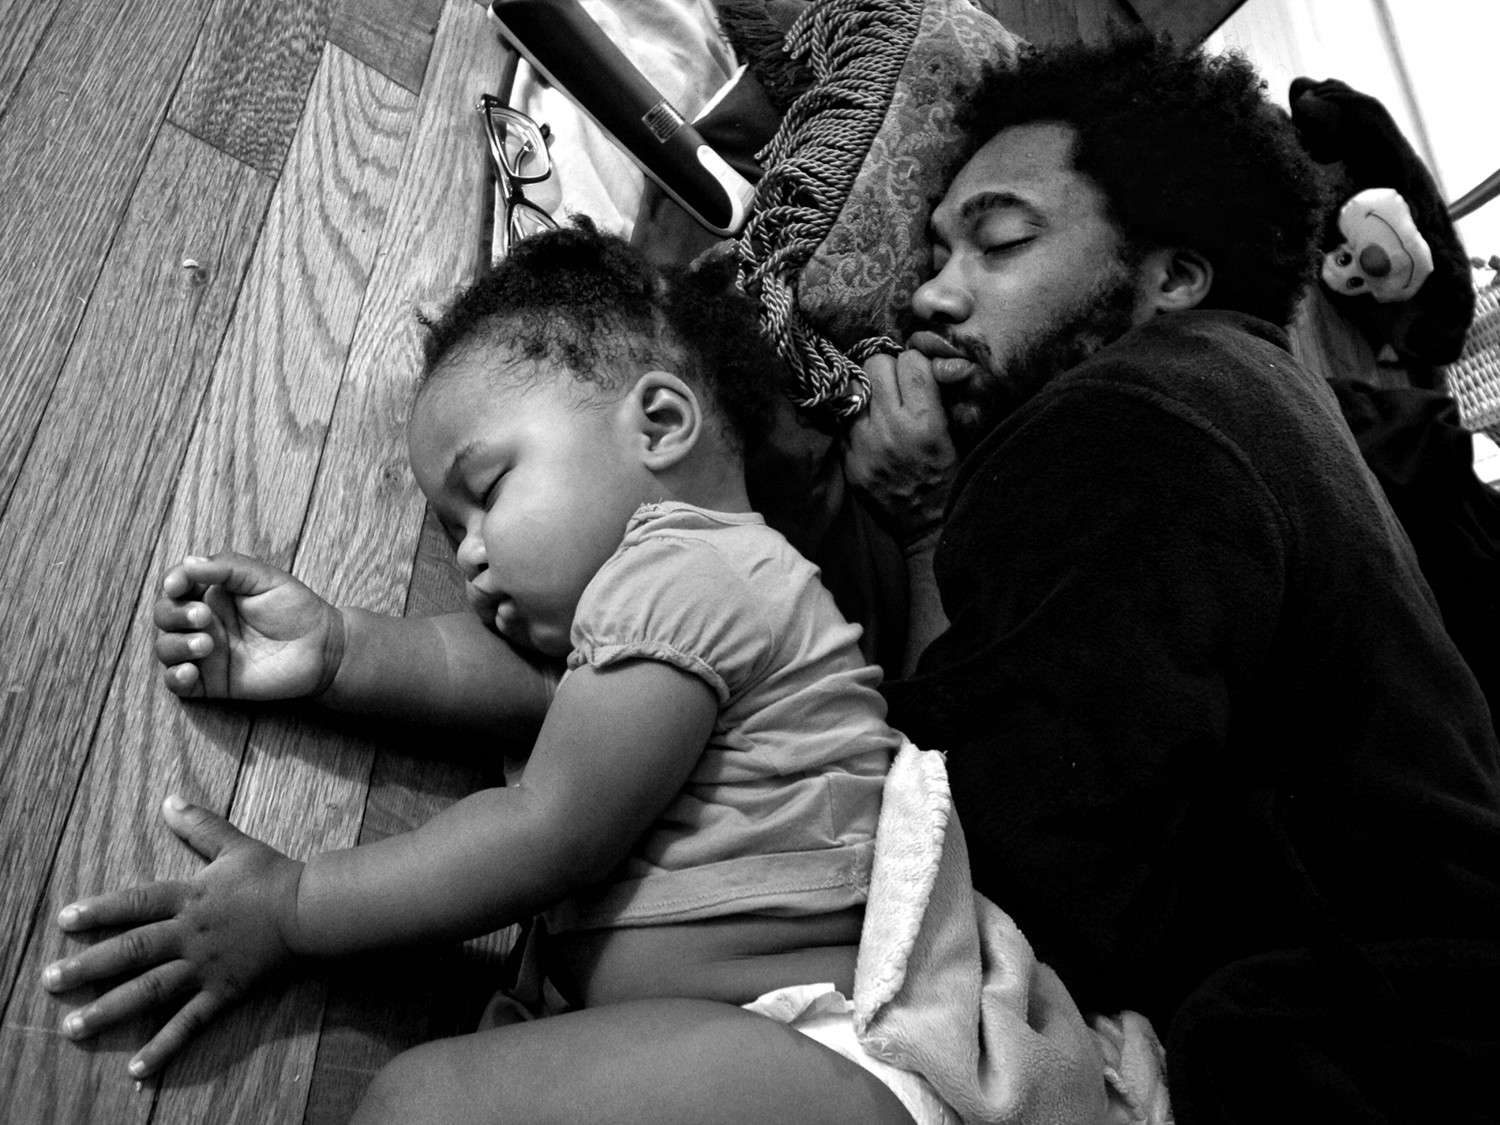 Anthony Francis falls asleep in front of his television with his daughter Tena in Camp Lejeune, North Carolina in 2012. Zun Lee spent three years documenting black fathers and their children in the United States and Canada.